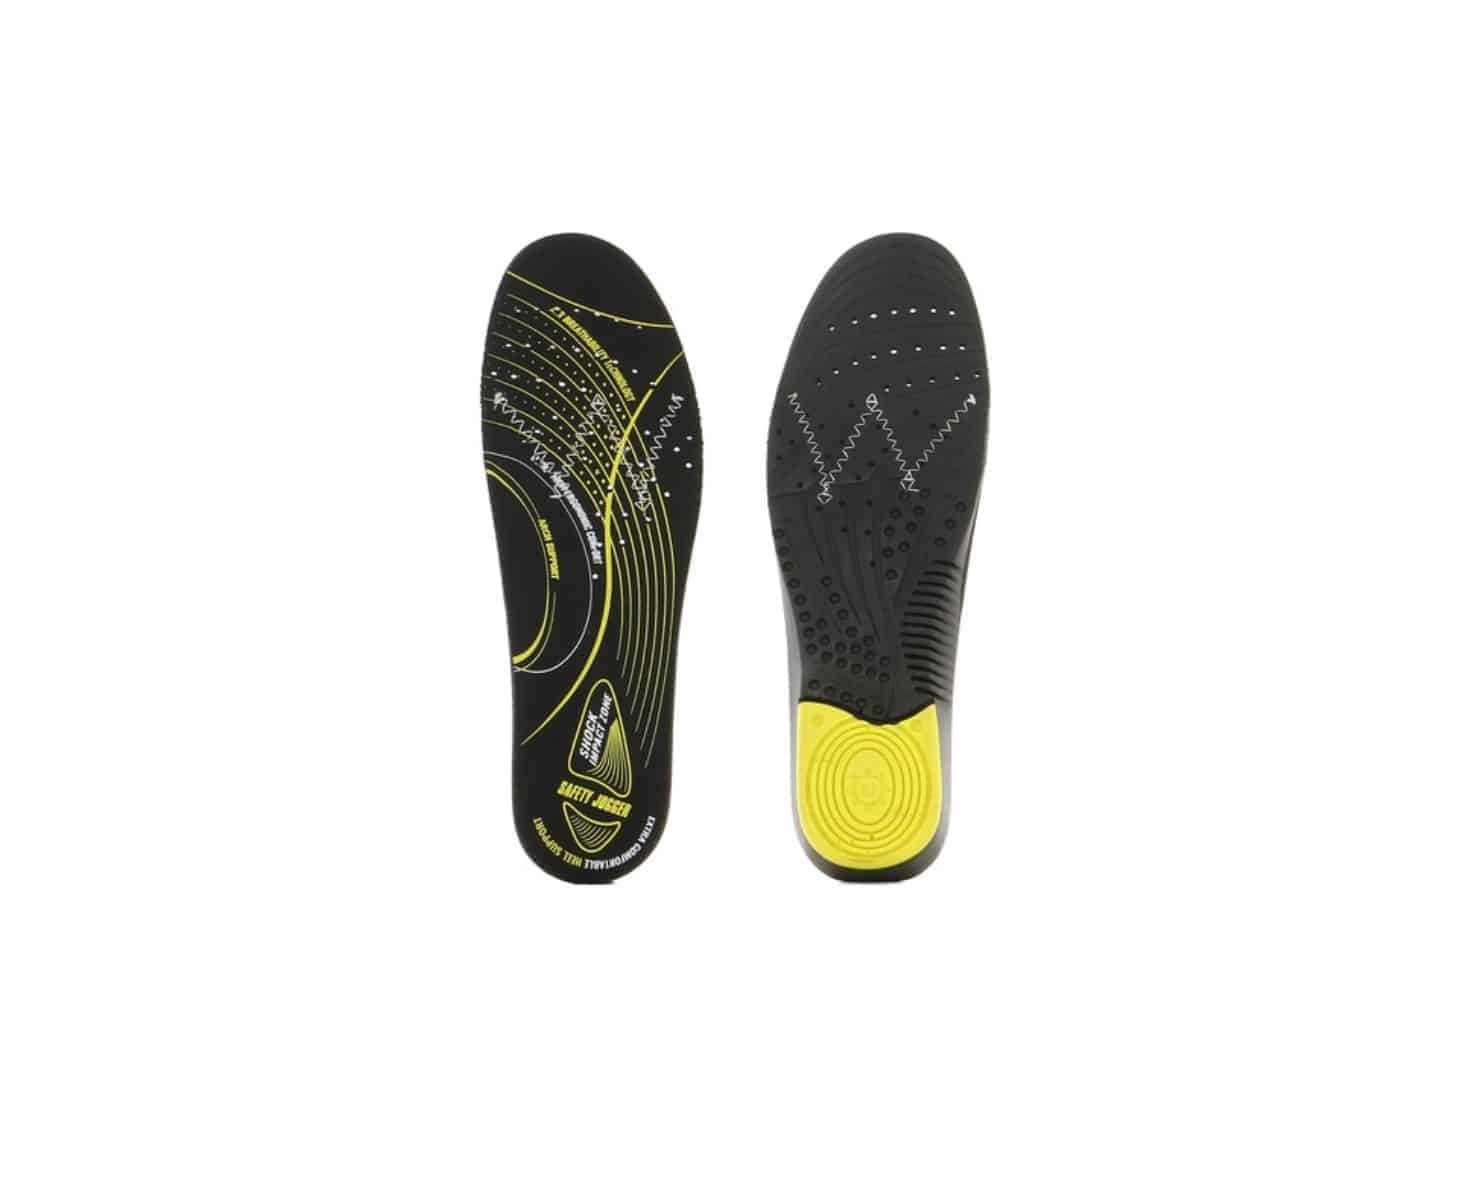 'SJ Comfort' Insoles by Safety Jogger